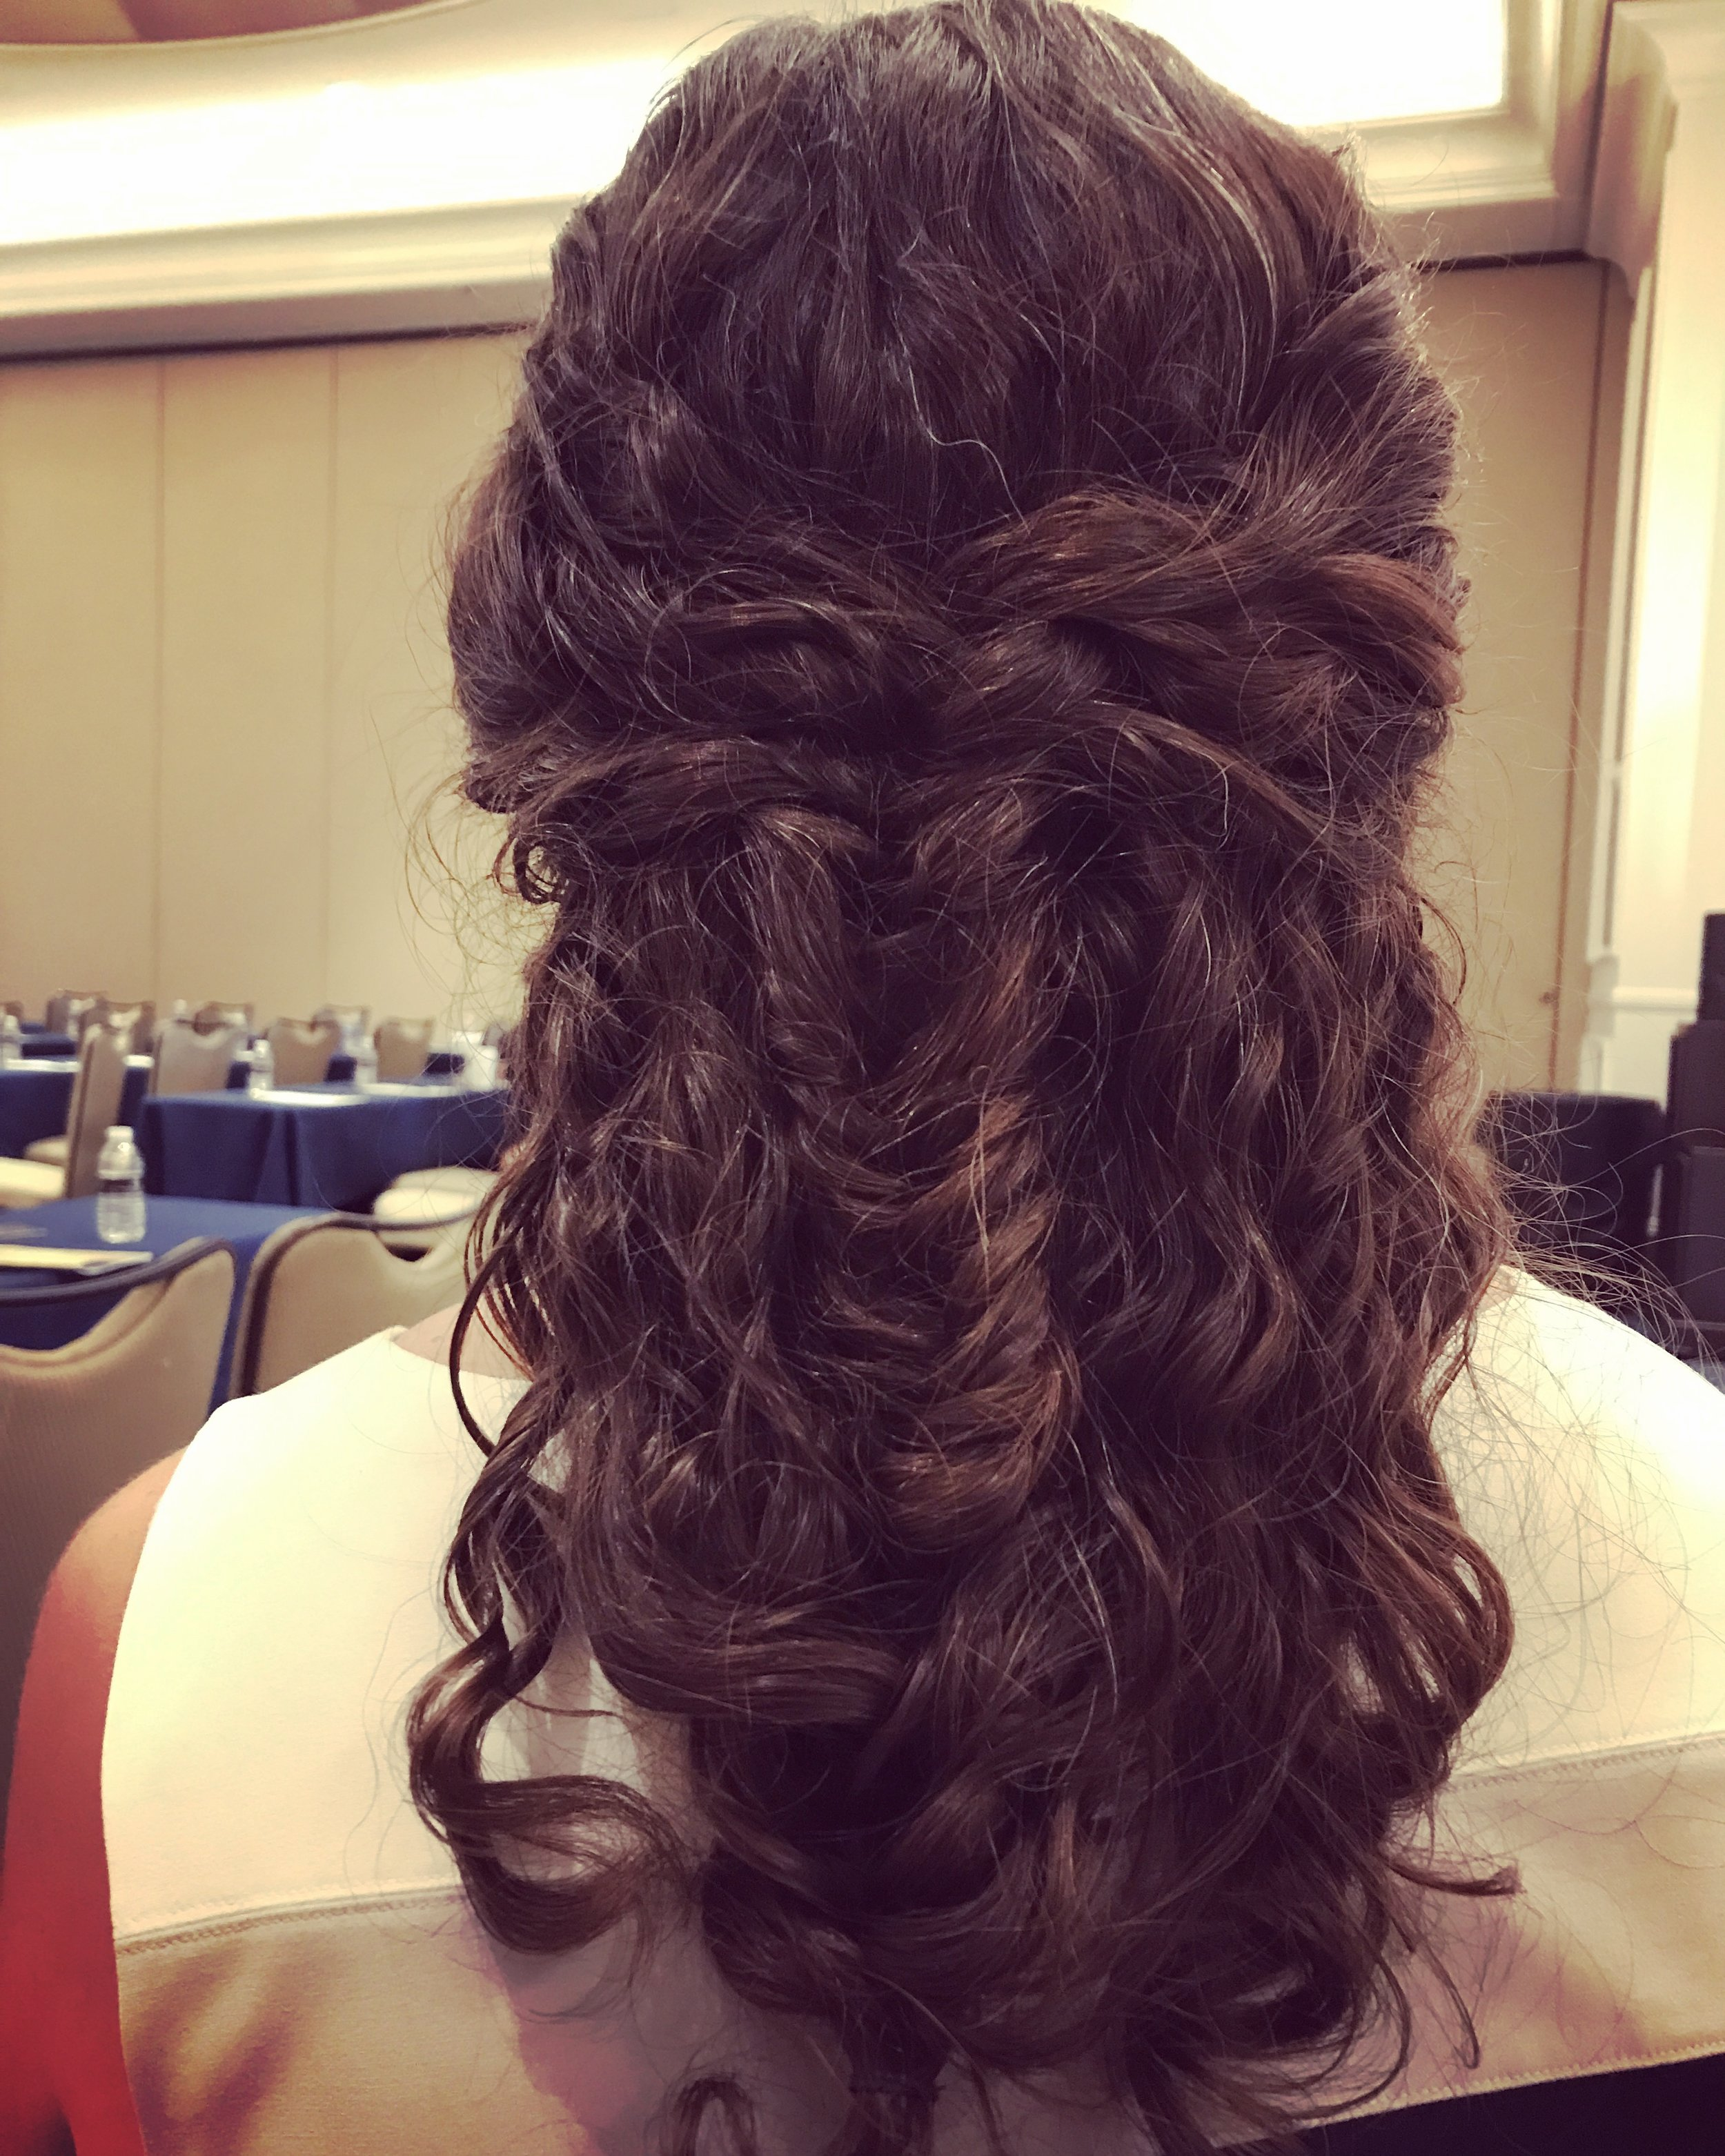 Dove  - Dove brought a lot of women a lot of joy in their suite, giving us the gift of good hair. I gave my stylist, Whitney, carte blanche, and she came up with an intricate fishtail braid that made me feel like a grownup.